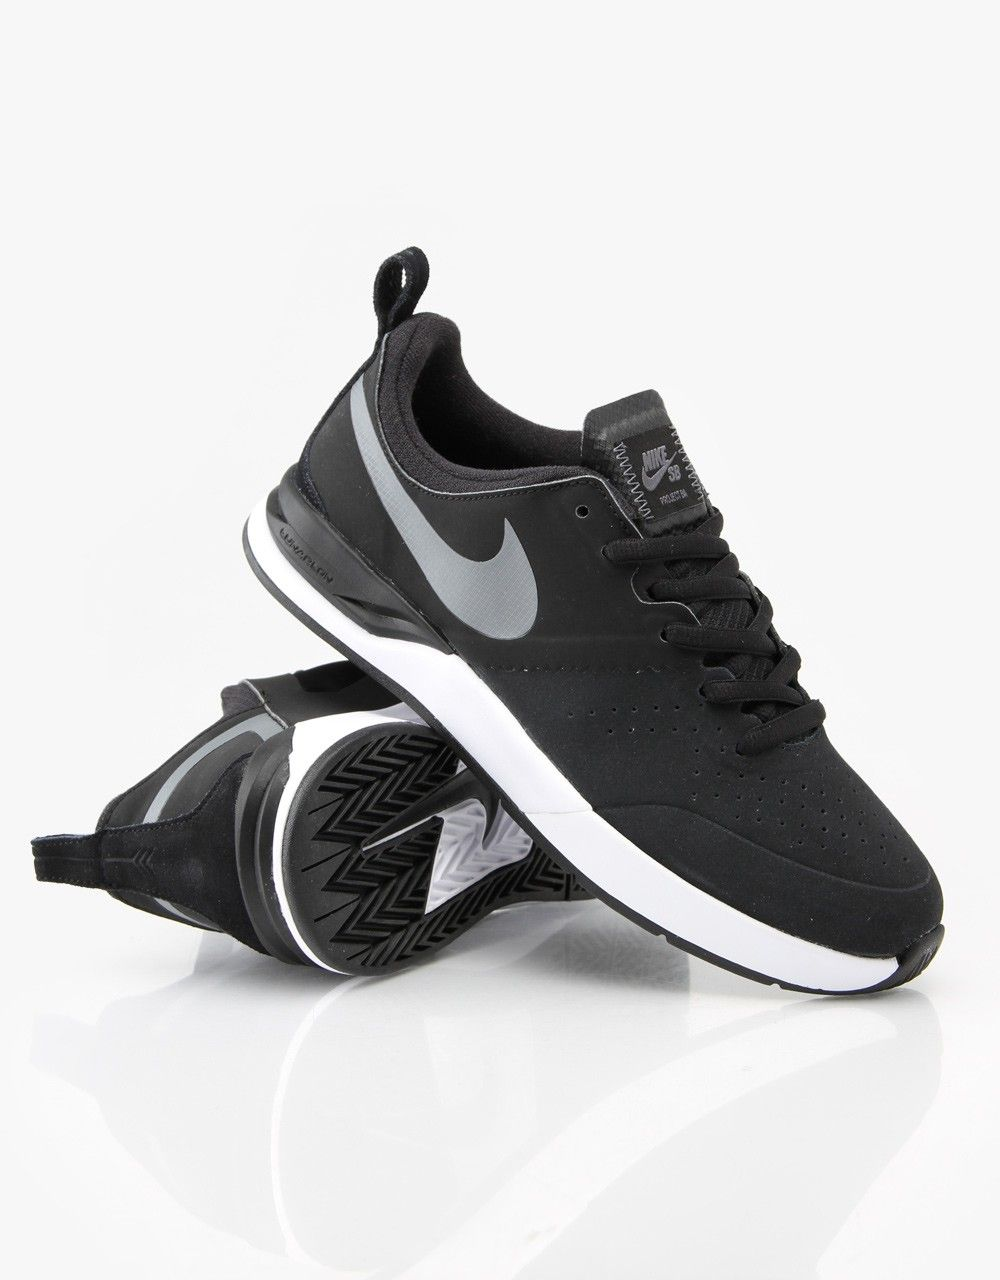 ca21aac9492f Nike SB Project BA Skateboarding Shoes - Black Dark Grey White -  RouteOne.co.uk